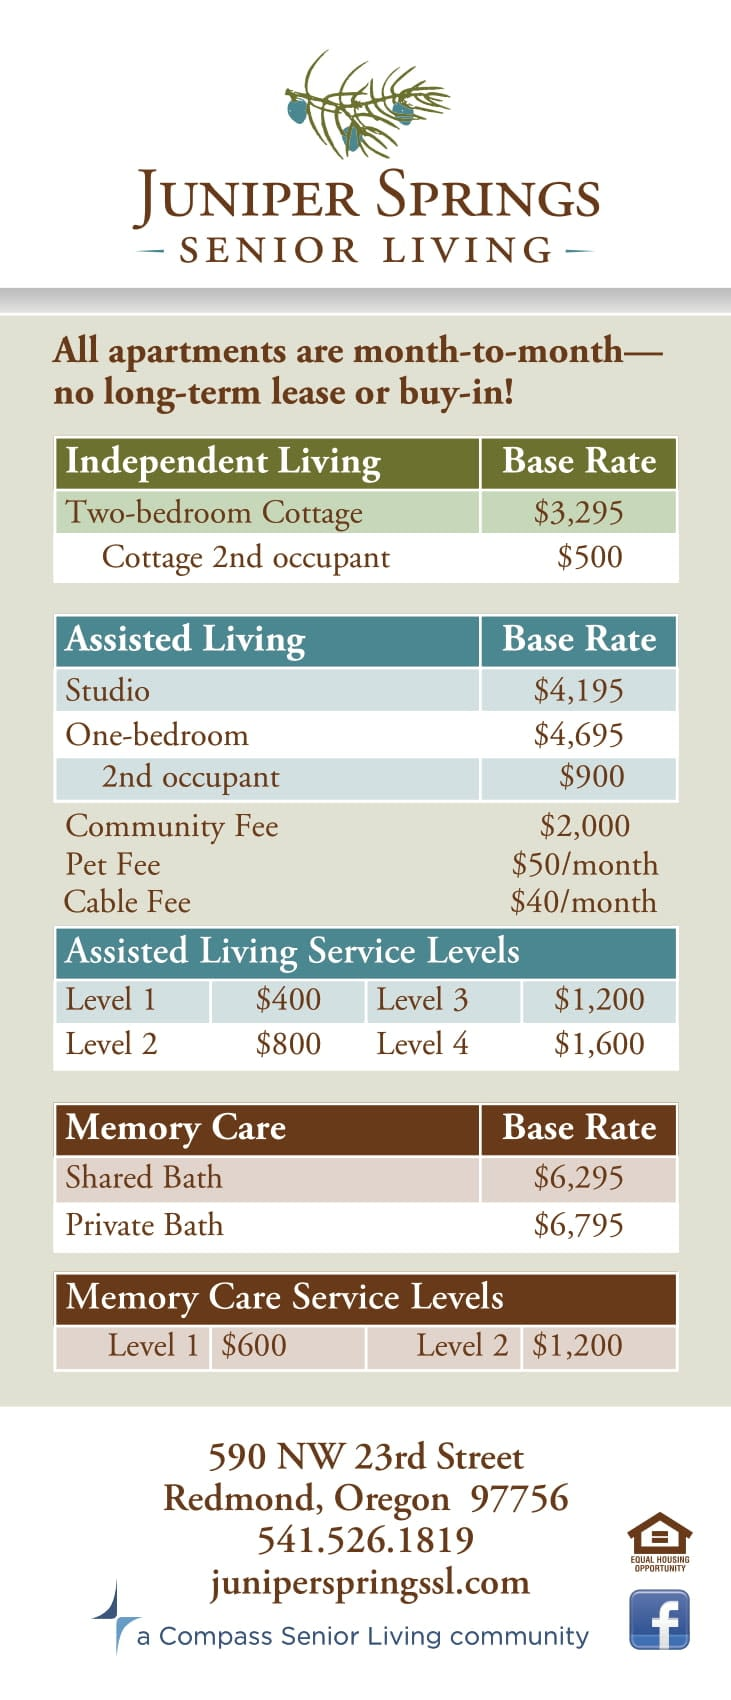 Juniper Springs Senior Living rates